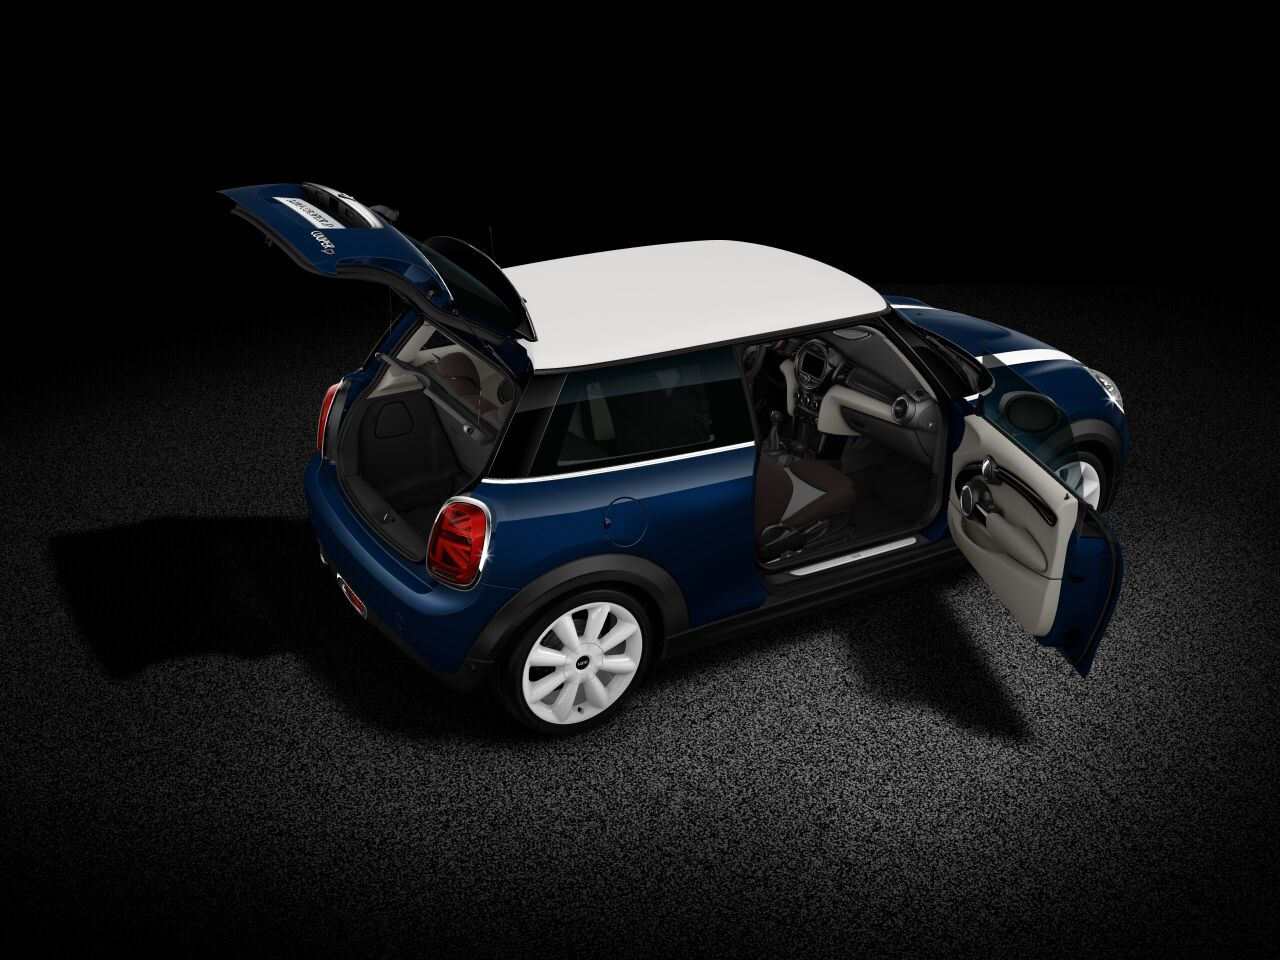 MINI Cooper D 3 Door full open body profile